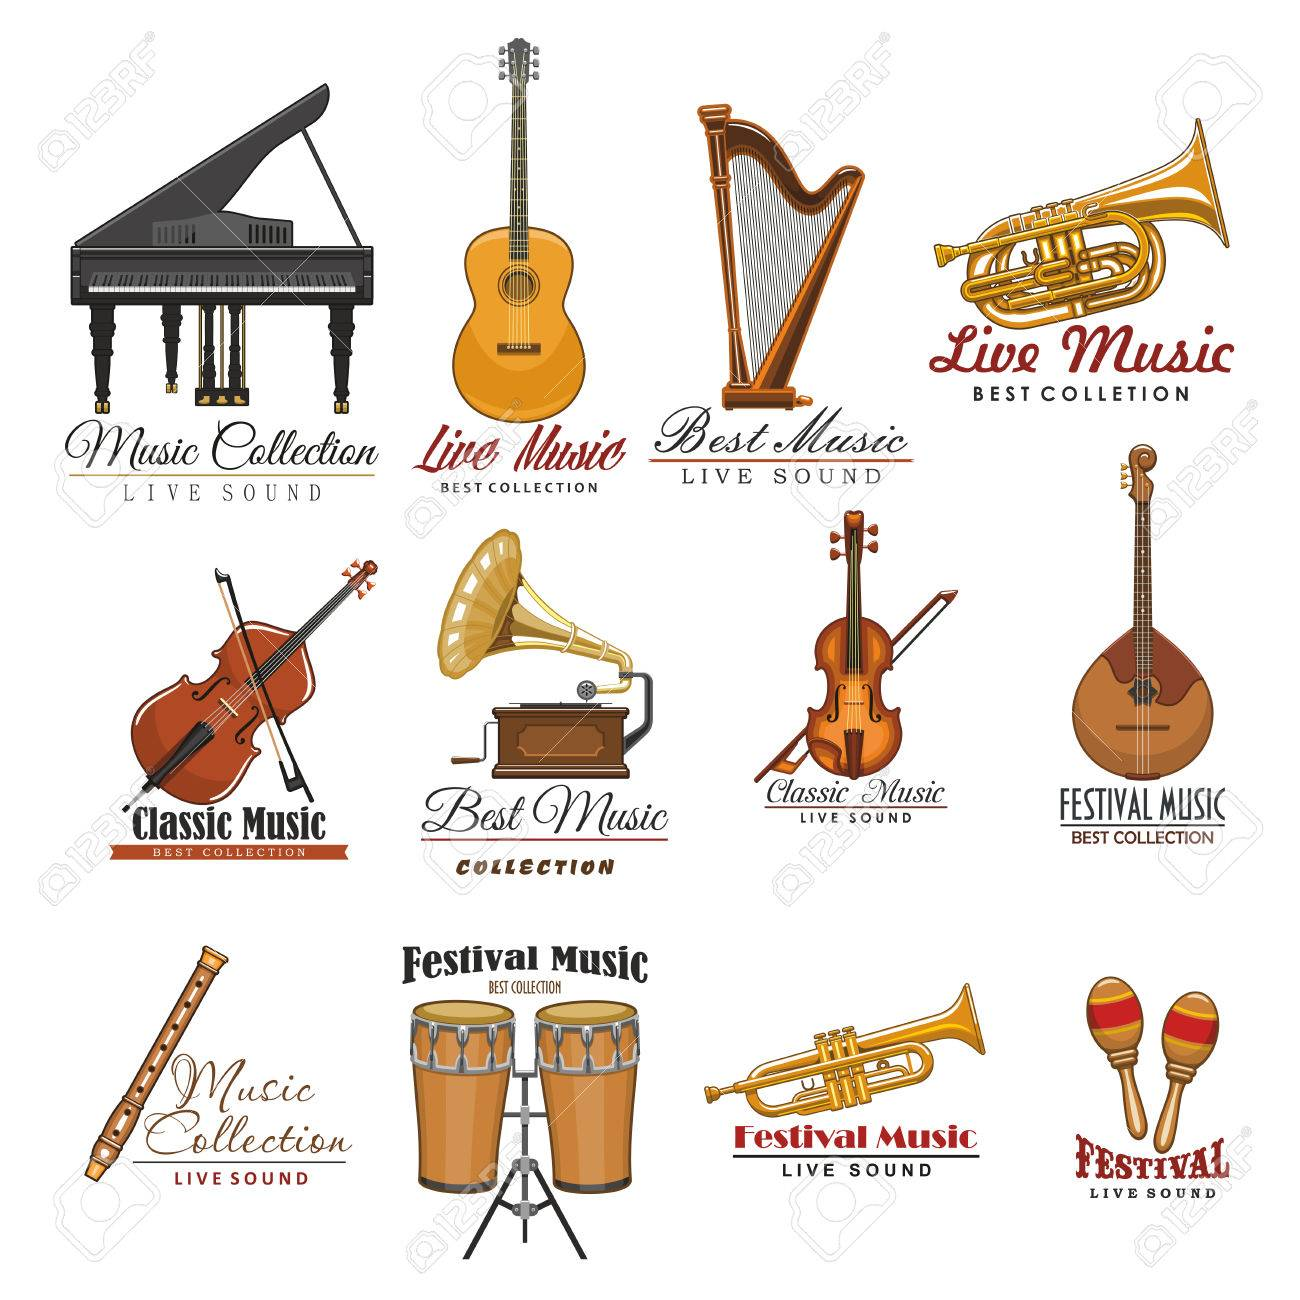 Musical Instrument Symbol Set For Music Design Royalty Free Cliparts